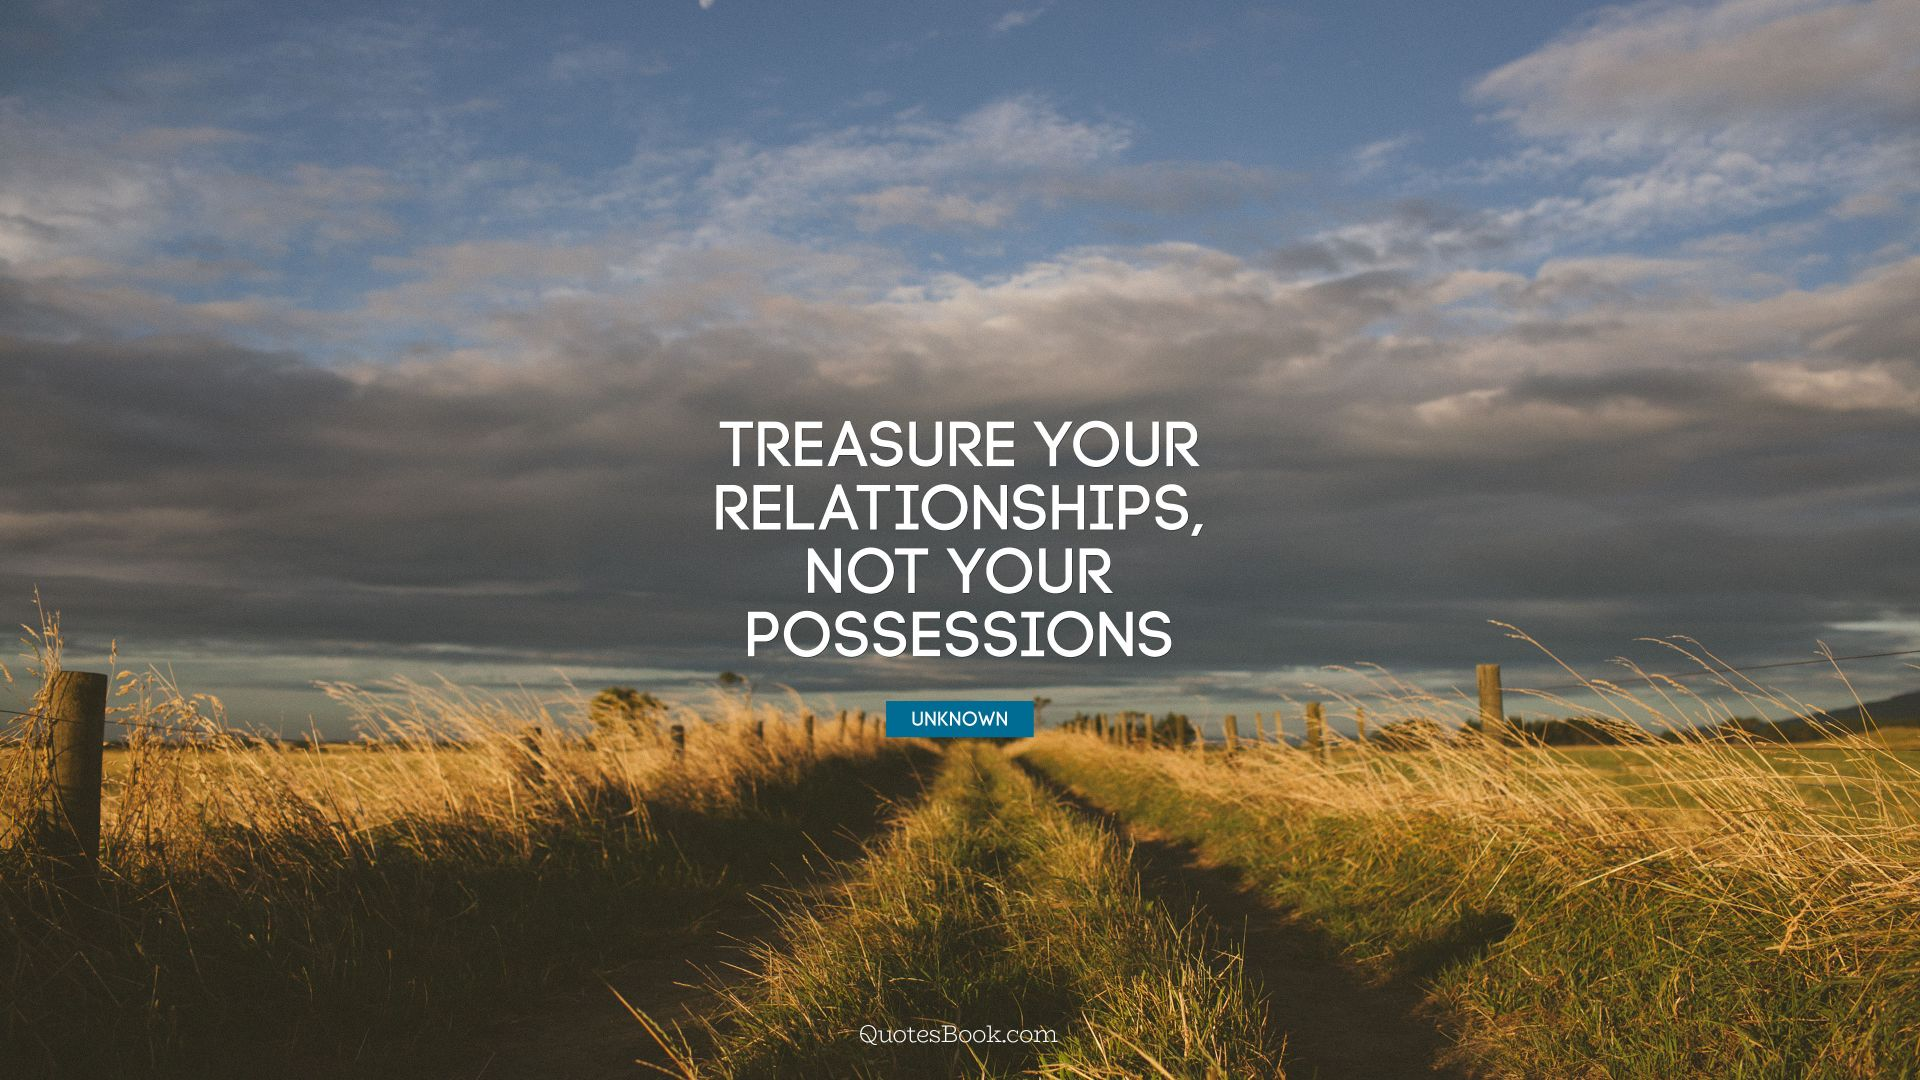 Treasure your relationships, not your possessions